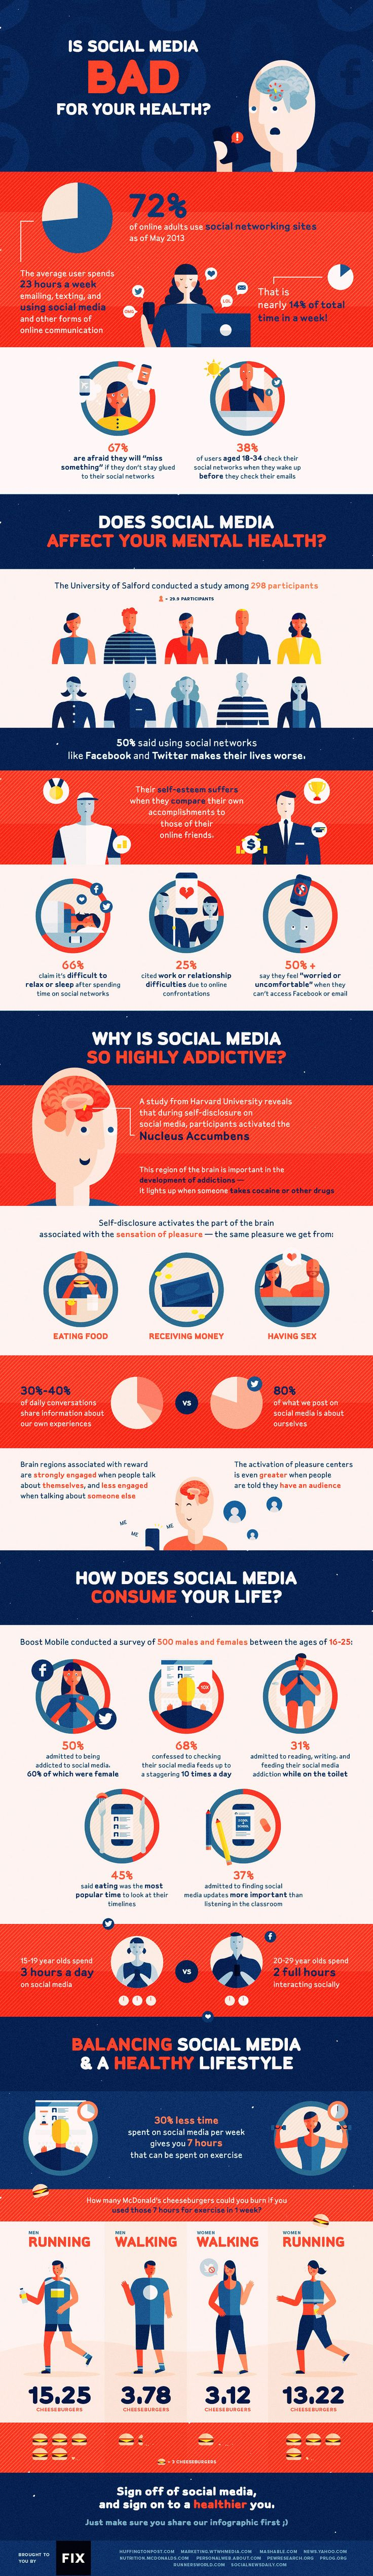 How is self-disclosure on Social Media similar to cocaine? Check out this #infographic on #socialmedia & health.